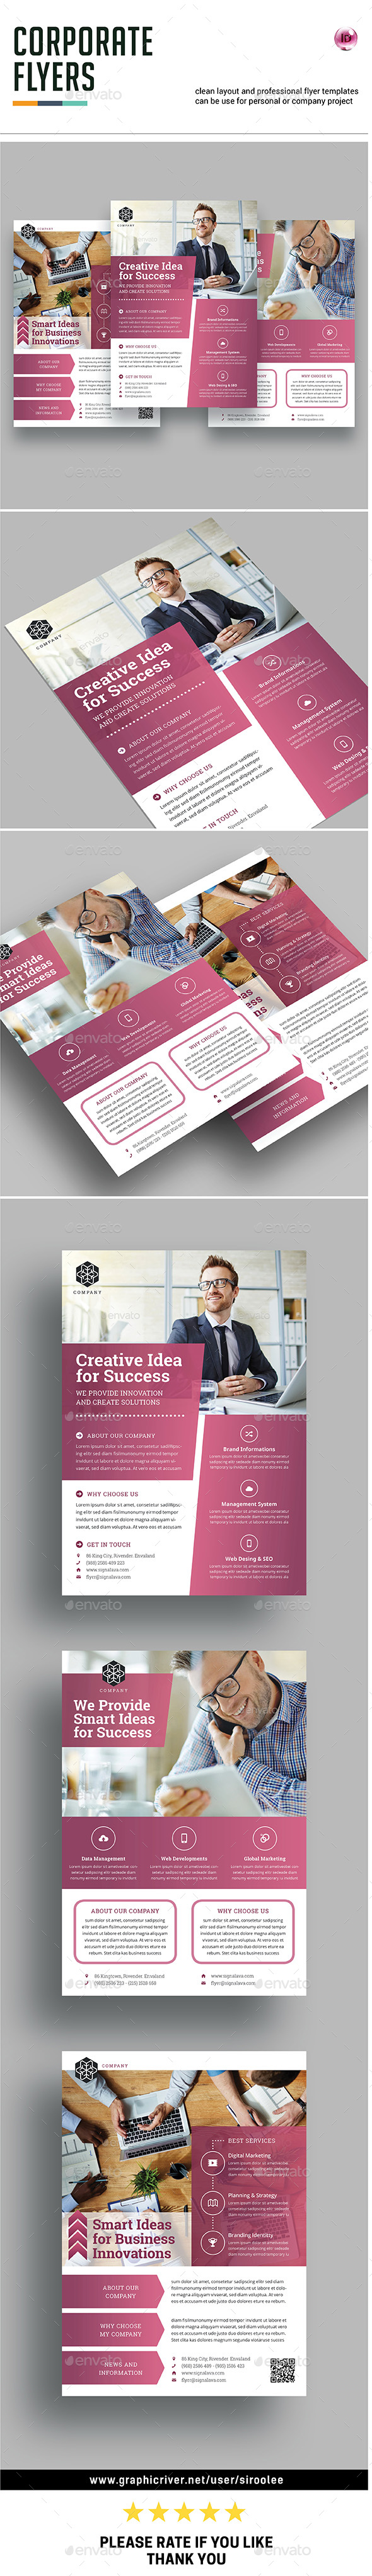 Corporate Flyers v.04 - Corporate Flyers